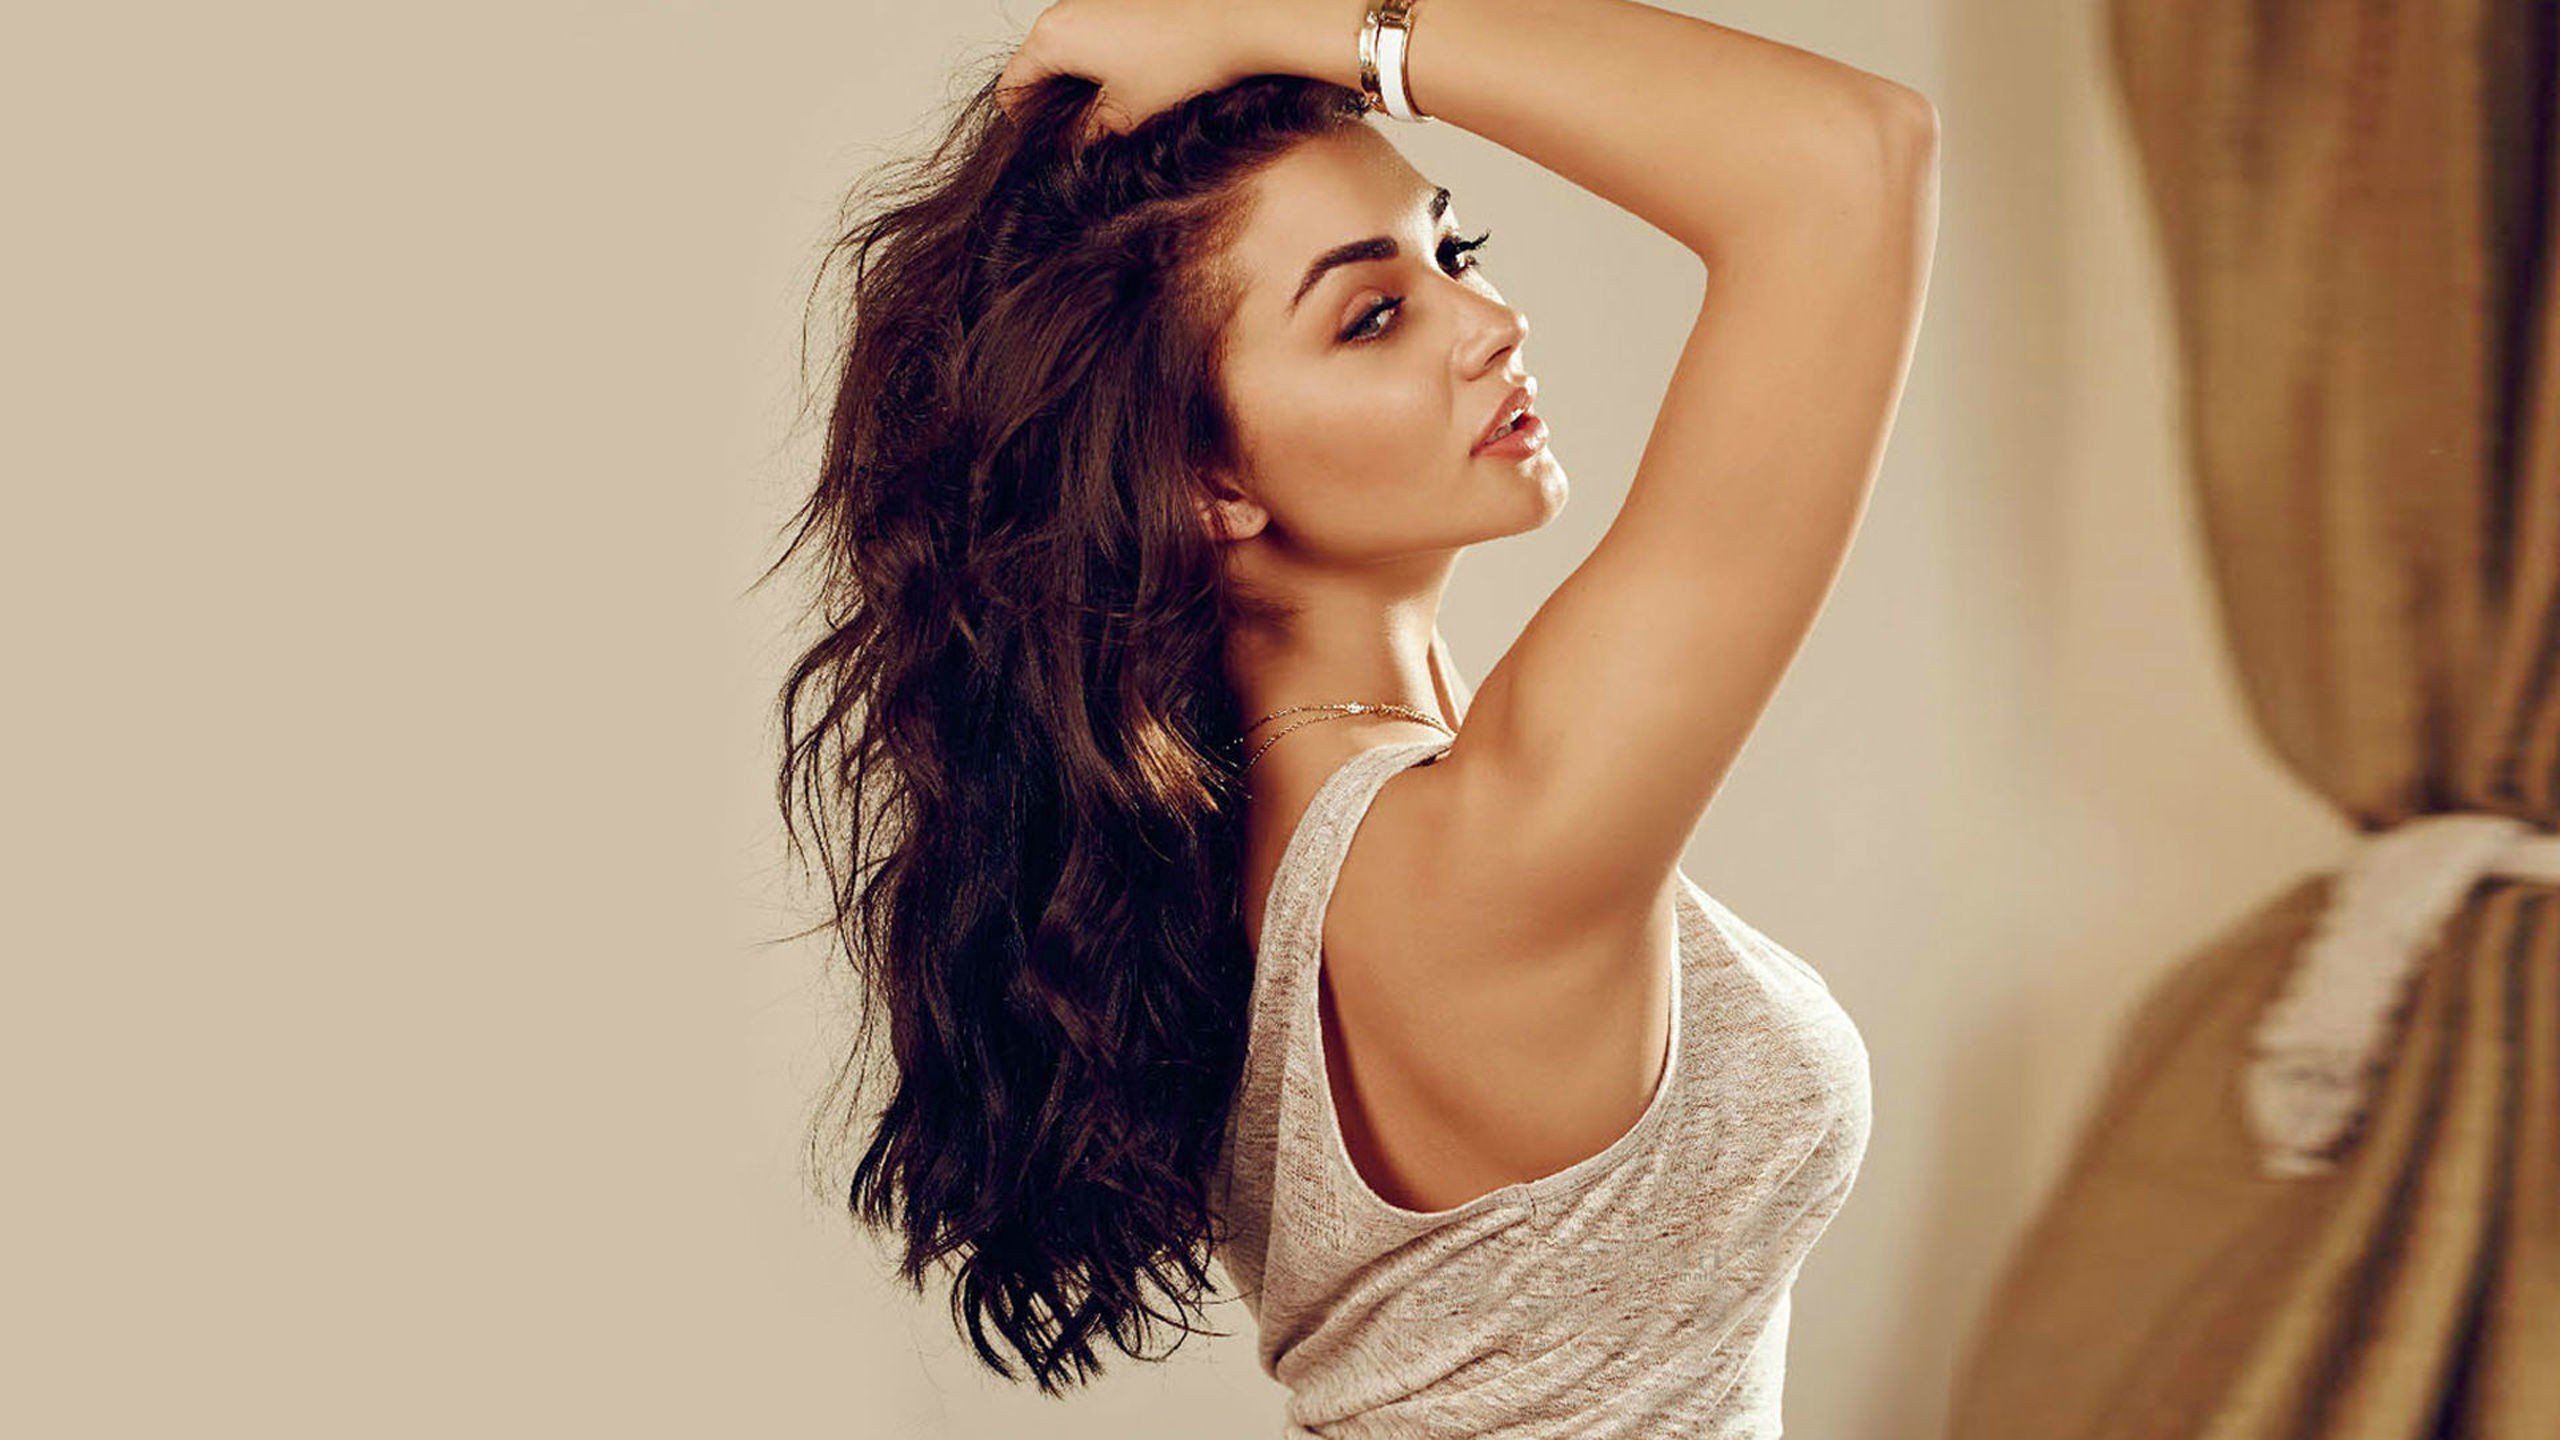 bollywood girl hottie actress Amy Jackson beauty movie photos 2560x1440